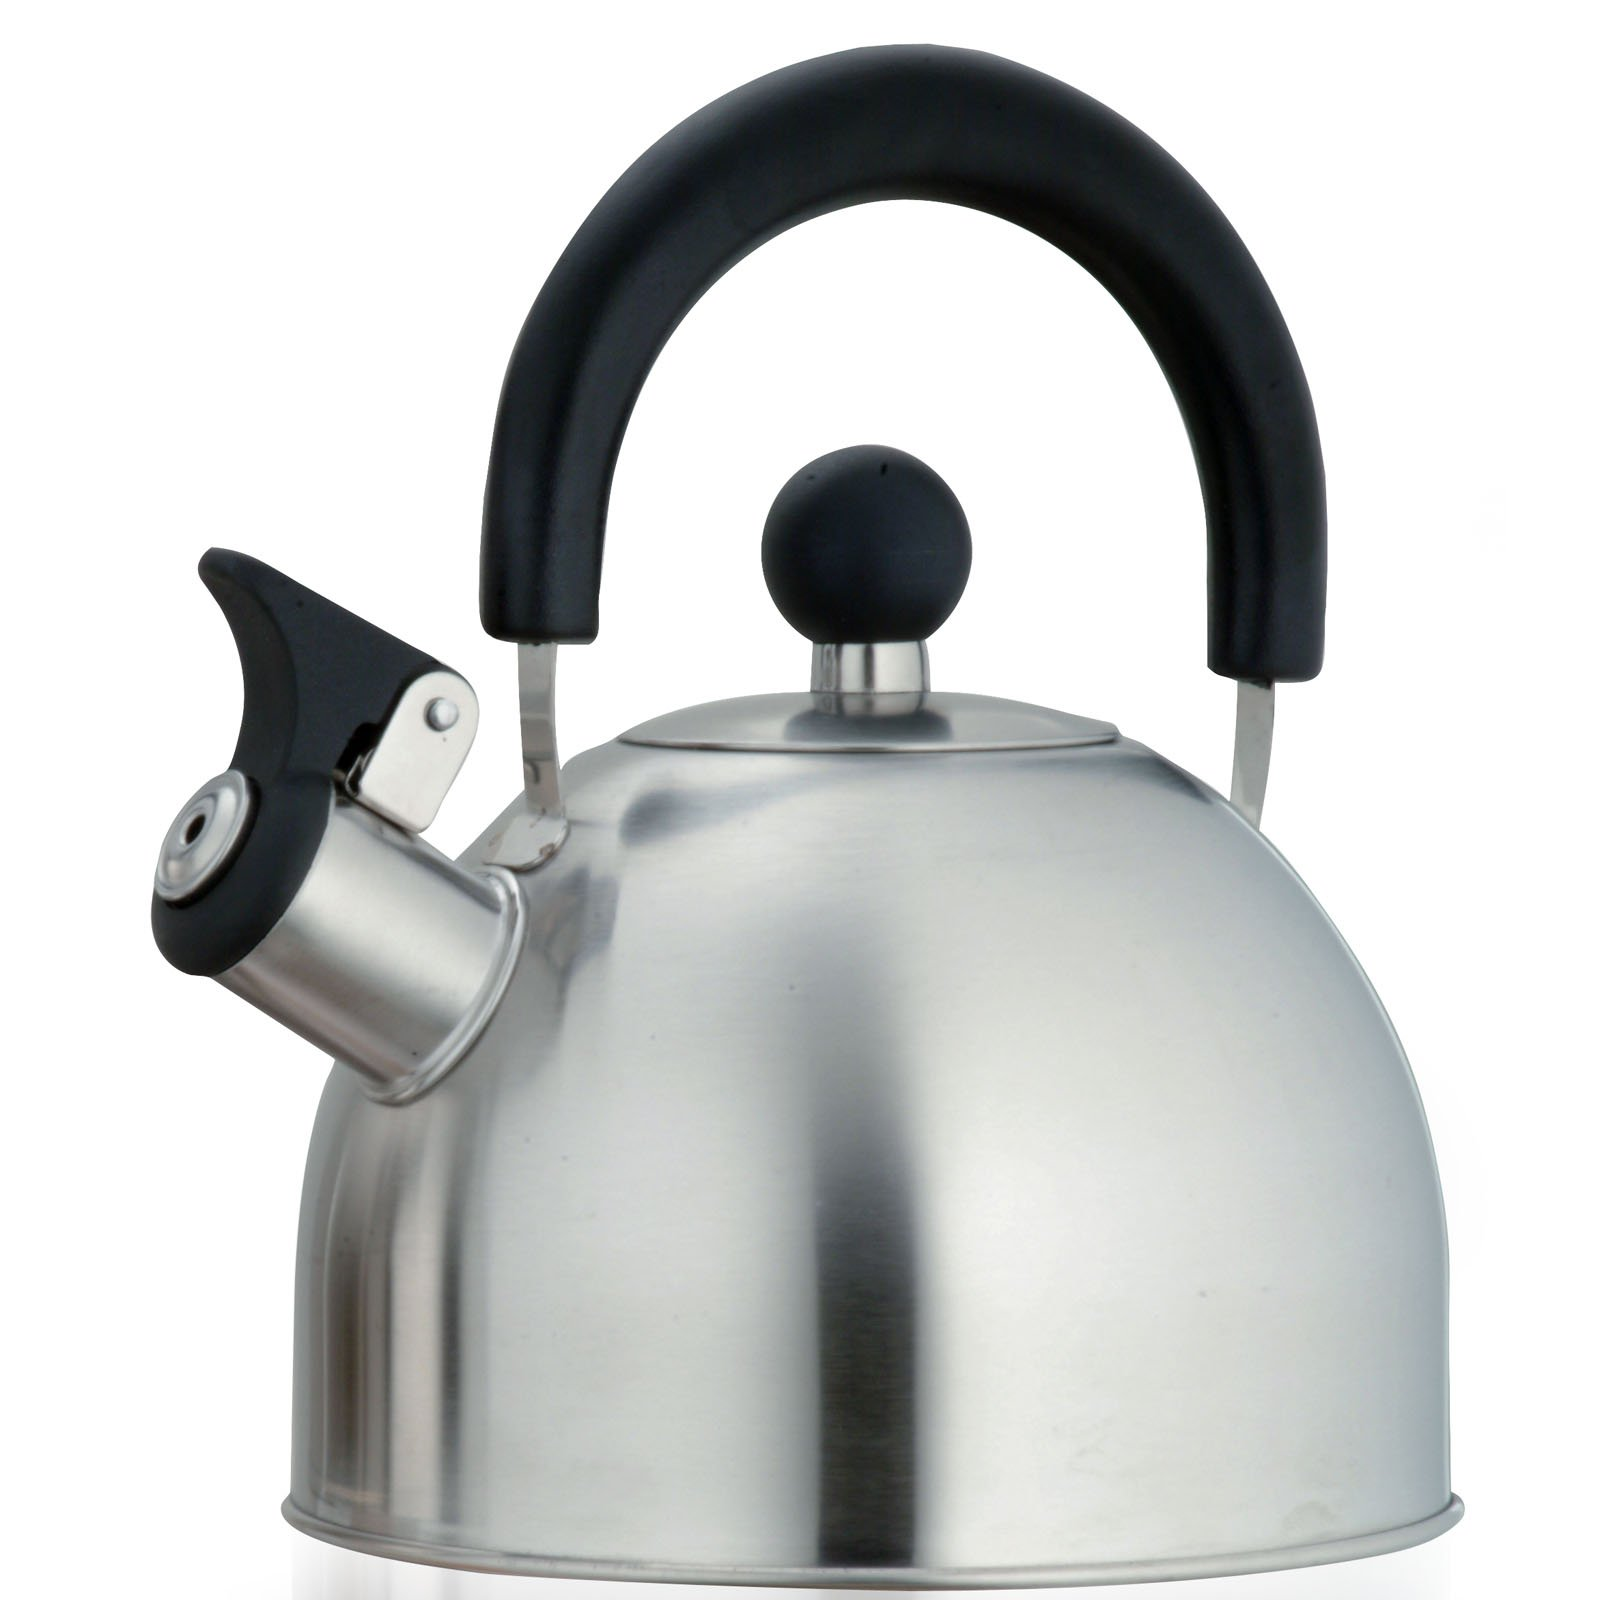 Creative Home Simplicity 1.5 qt. Whistling Tea Kettle